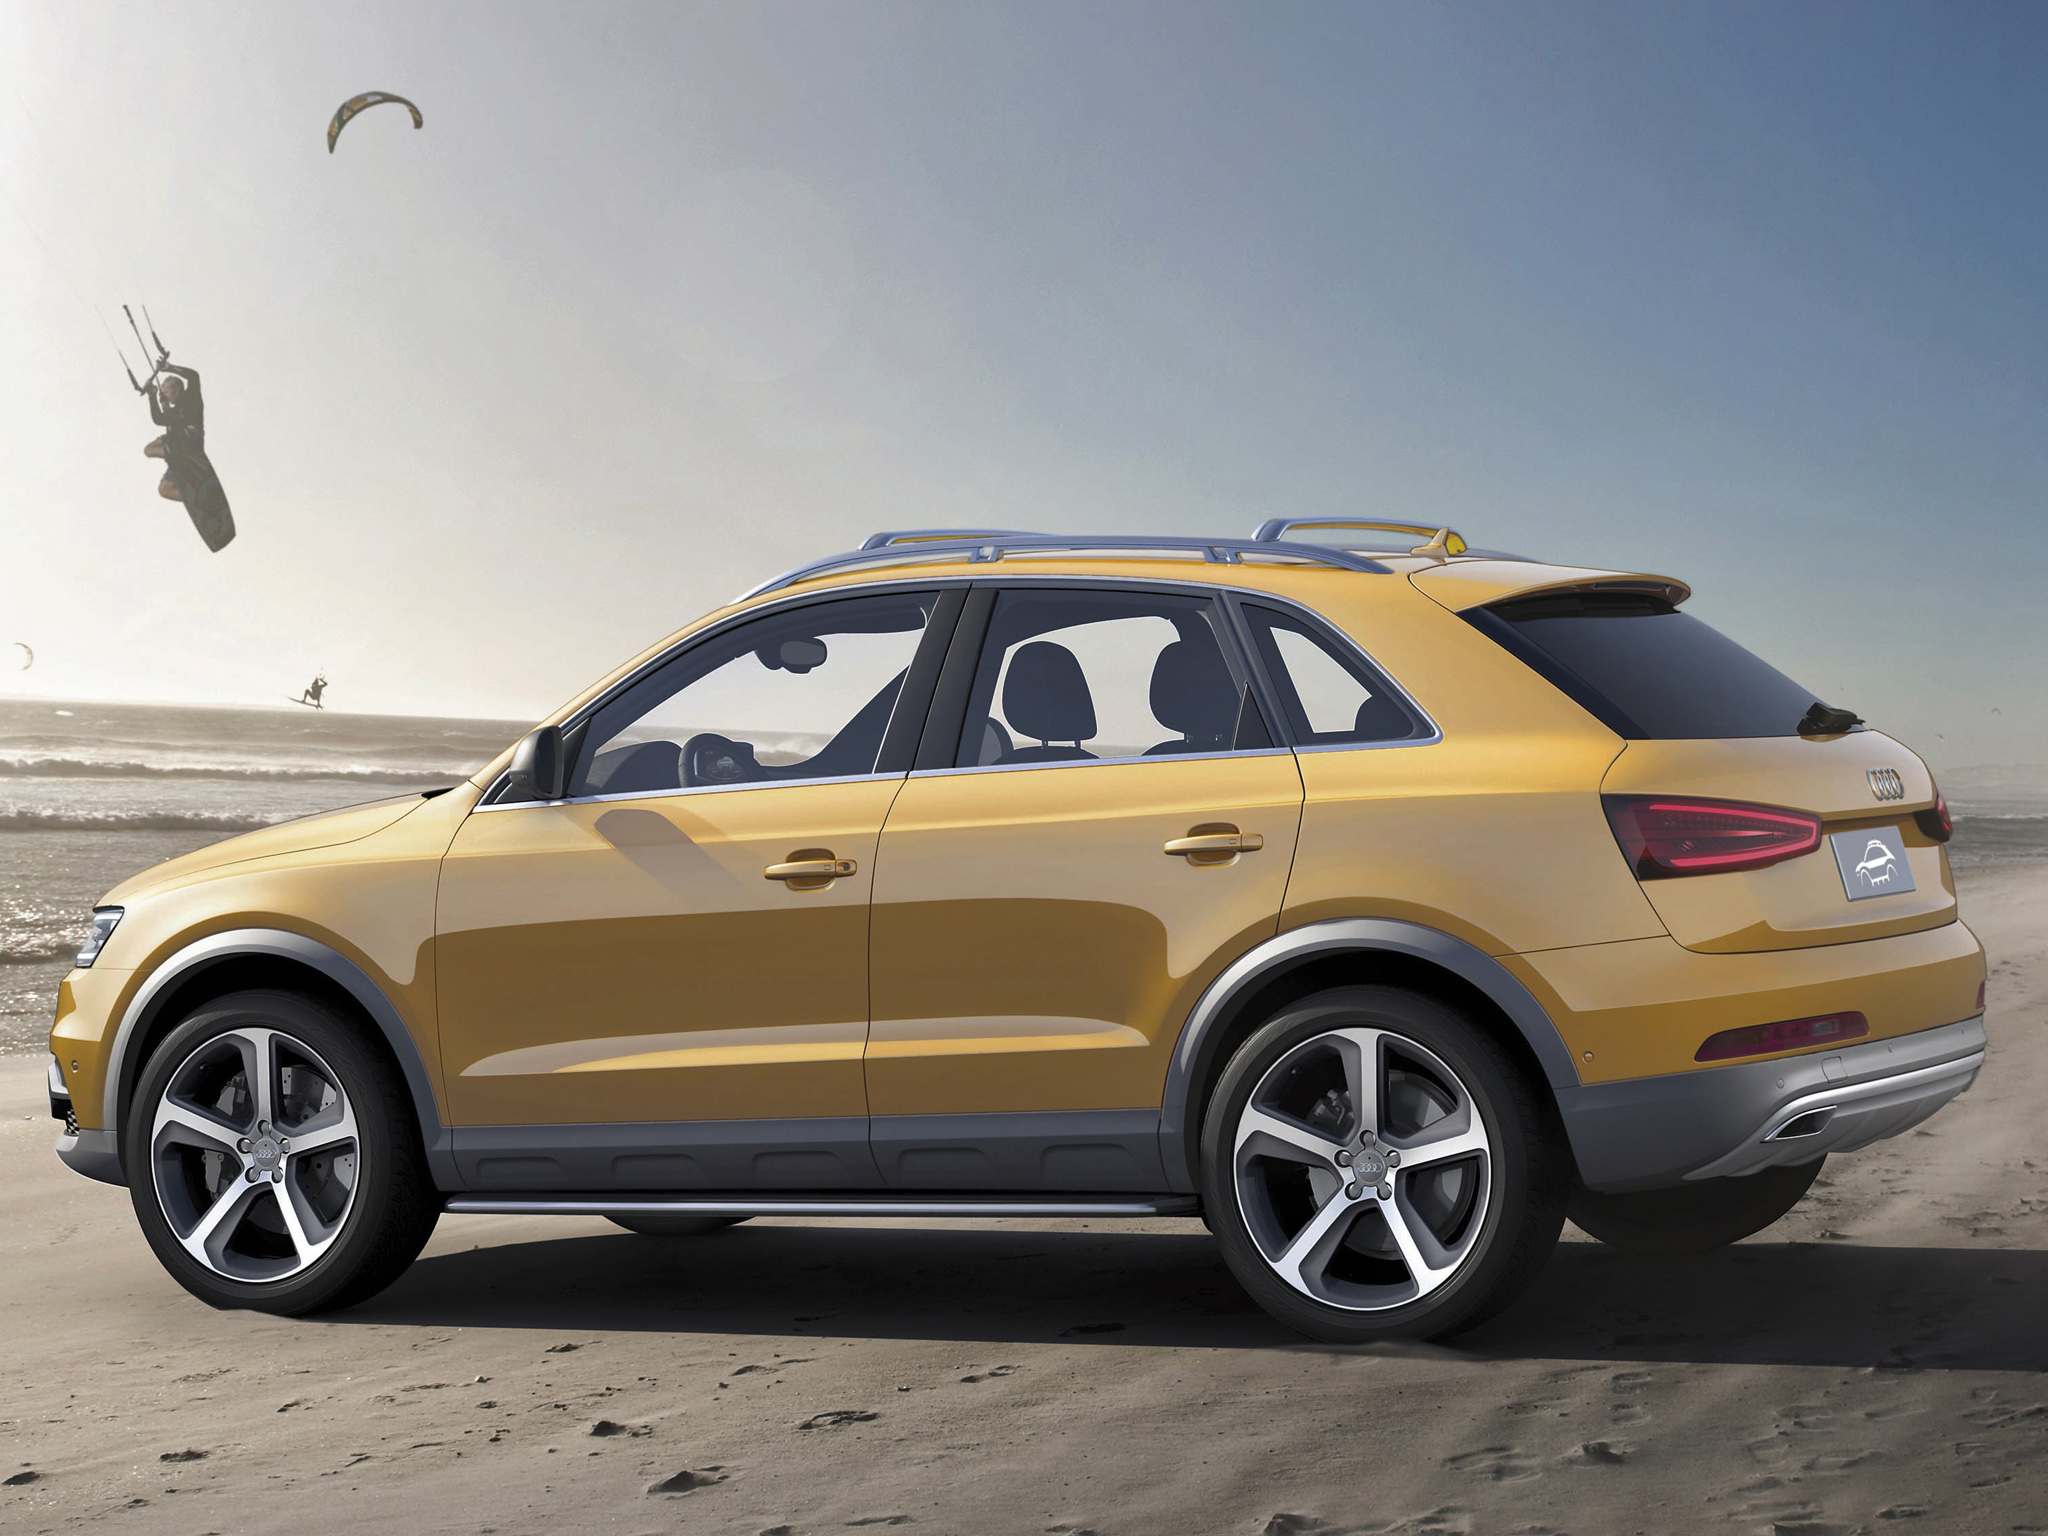 2018 audi q3 will have rs tdi version 3 cylinder engines for Quando esce la nuova audi q3 2018